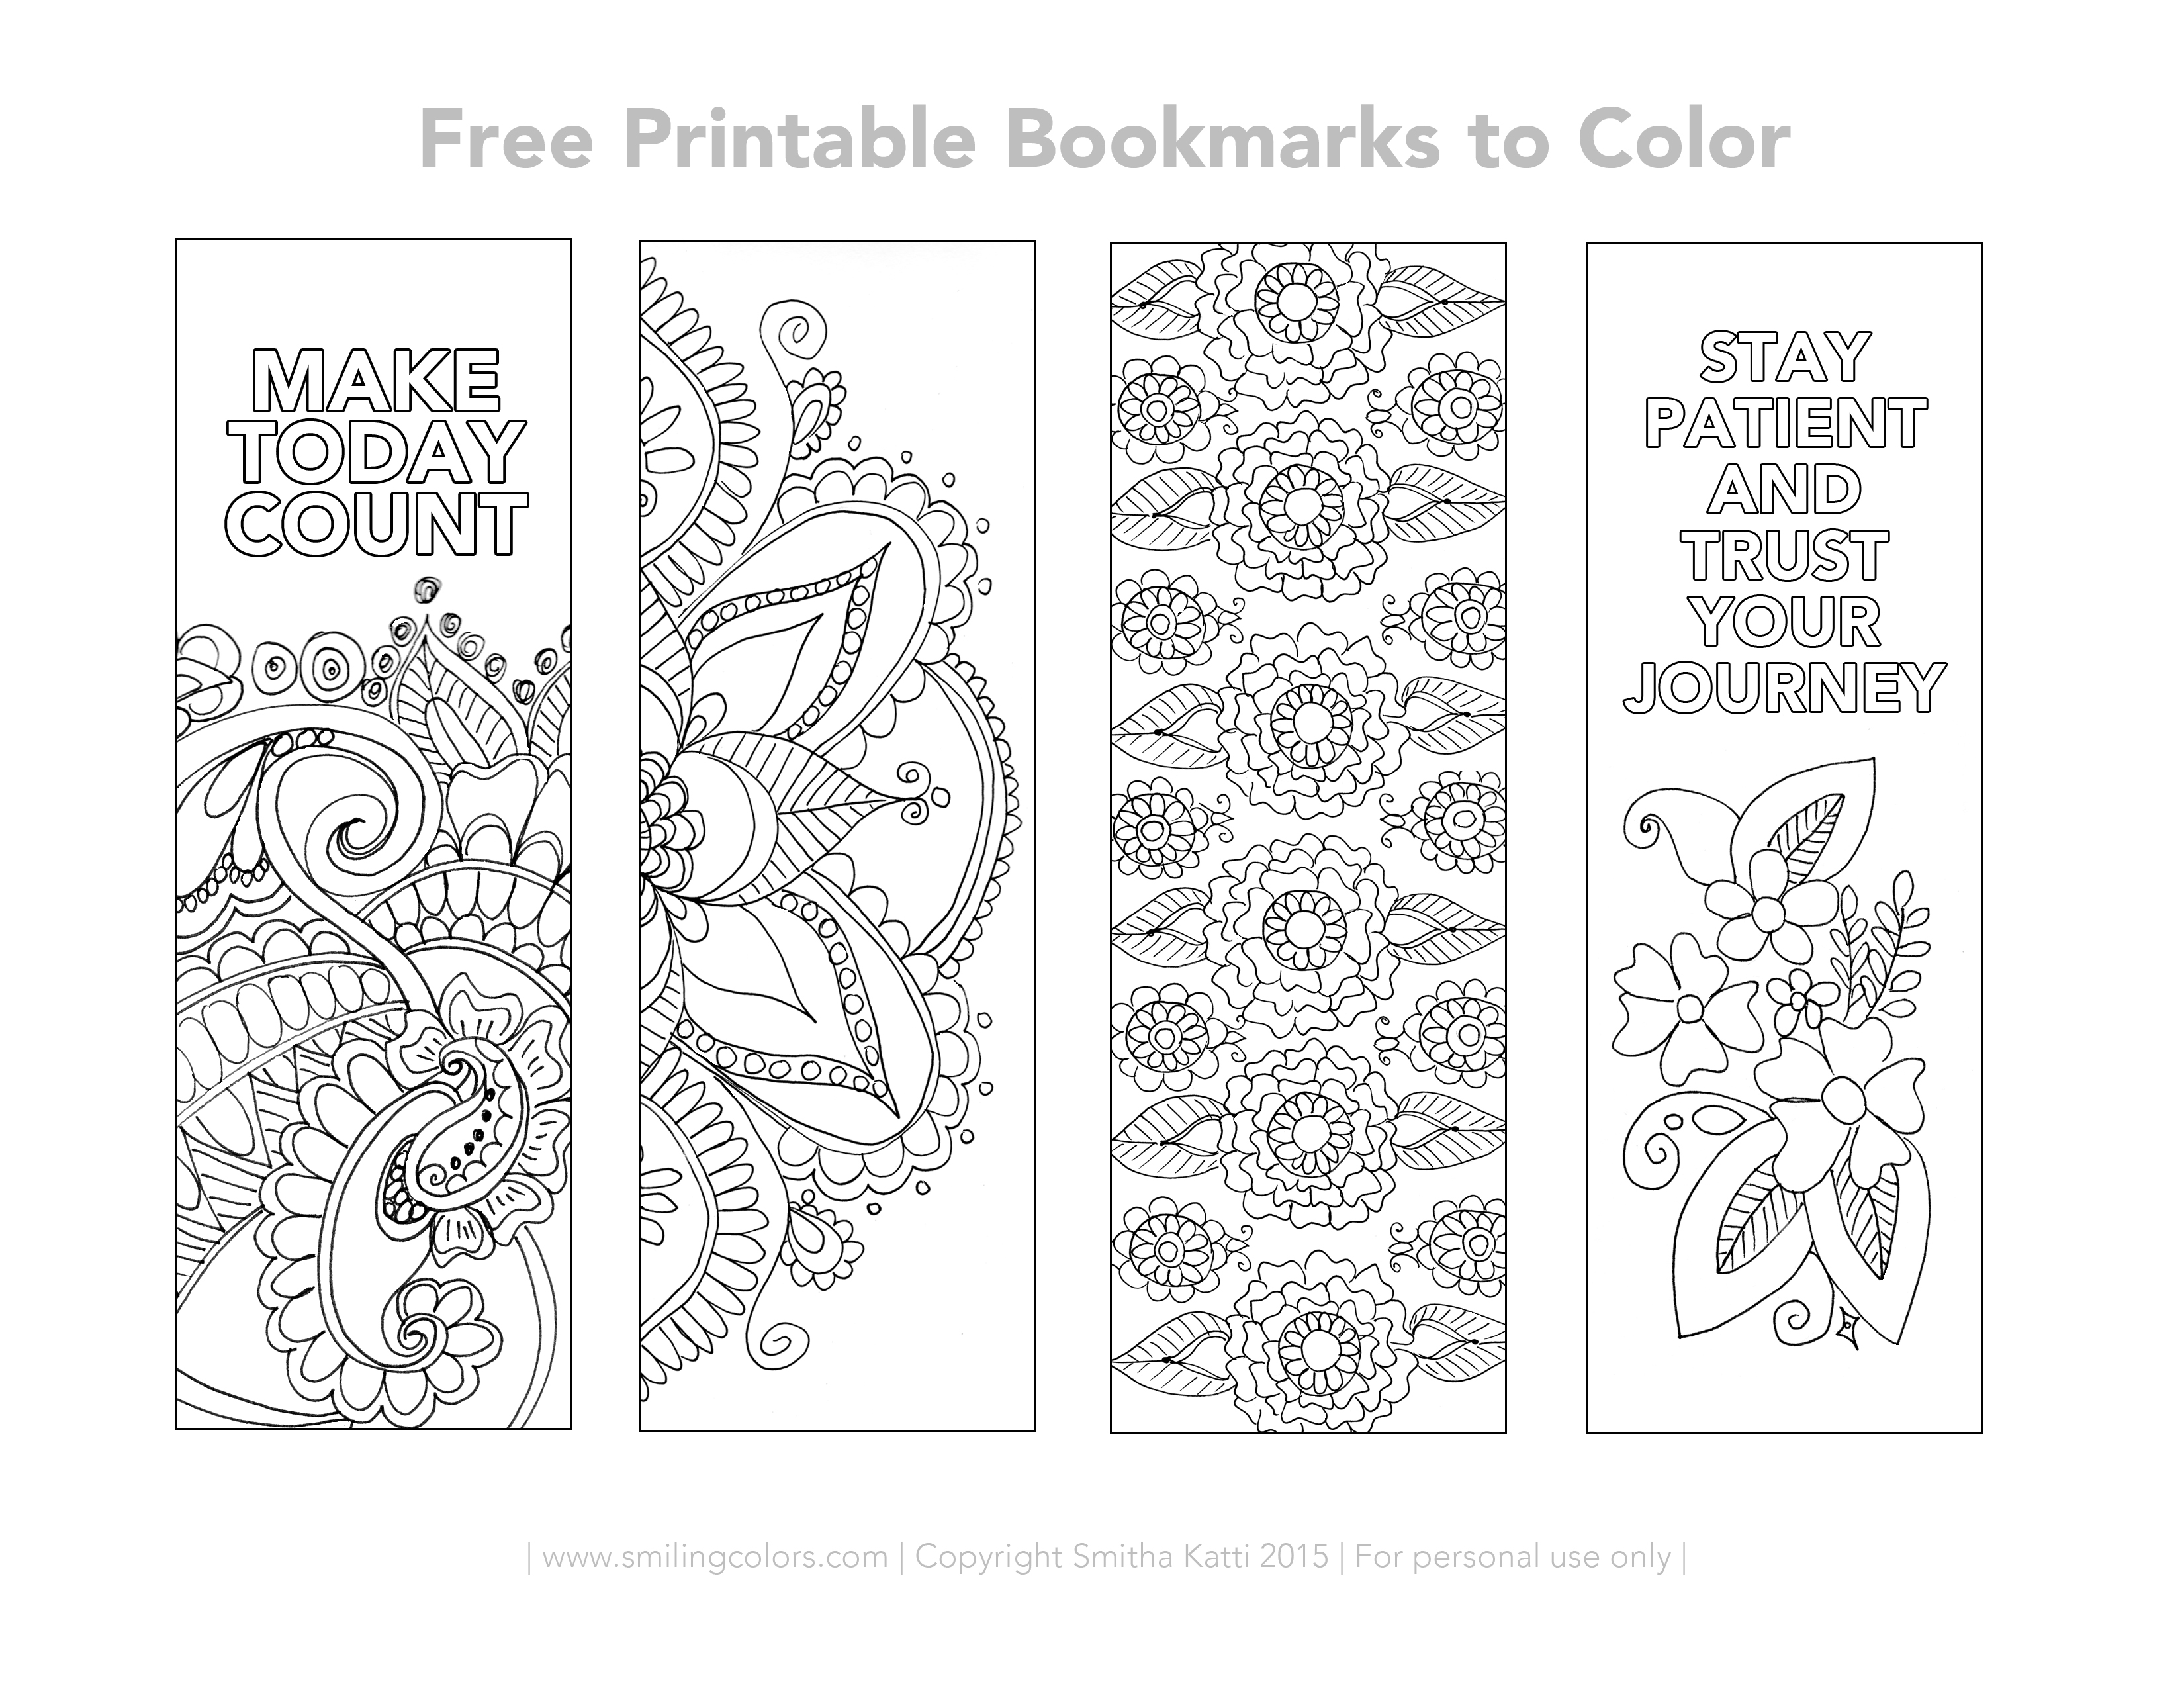 This is a picture of Sly Printable Bookmarks Black and White